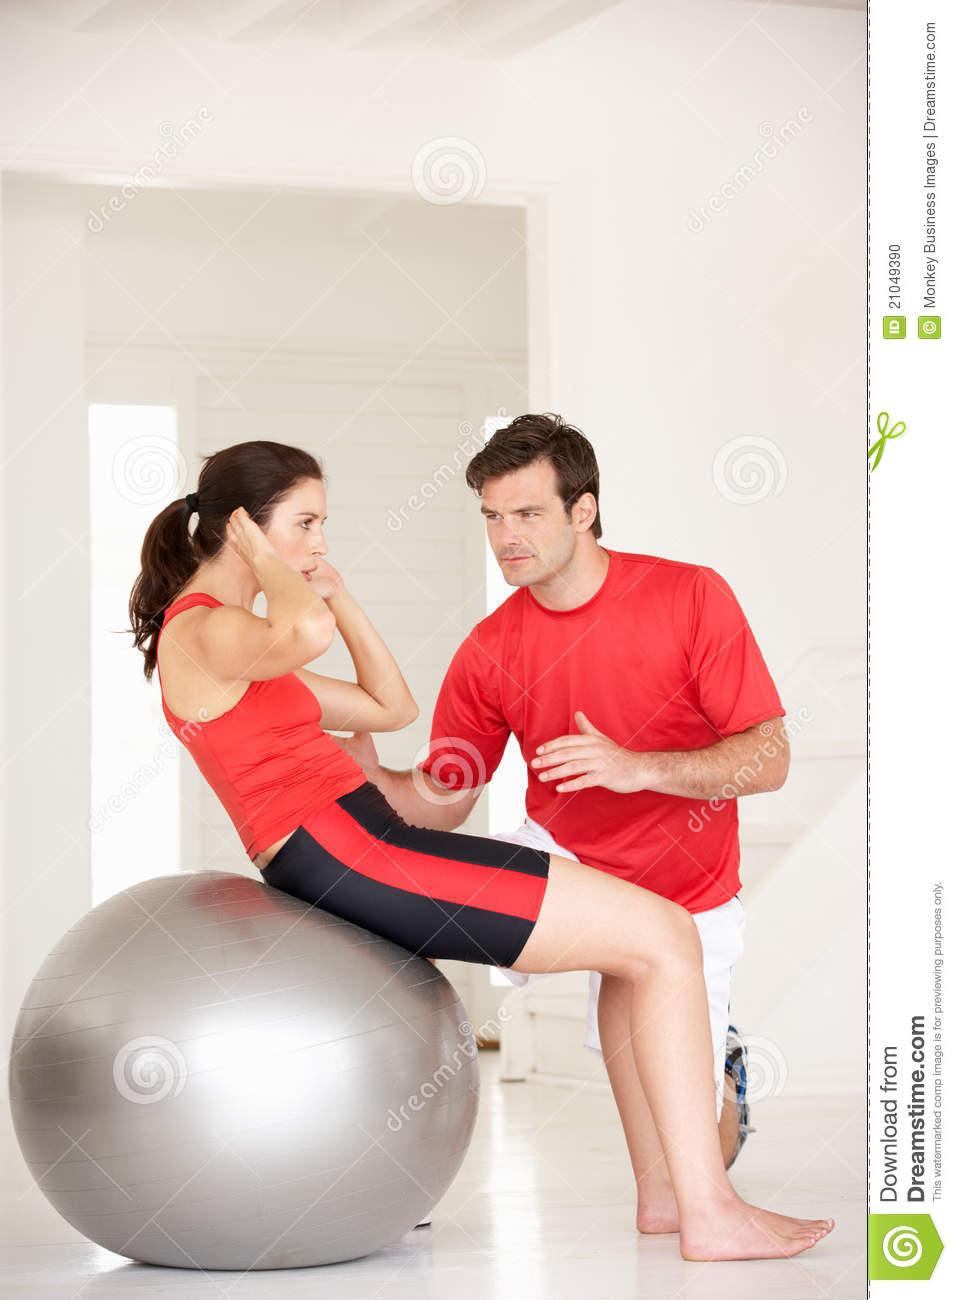 Woman with personal trainer in home gym stock photo